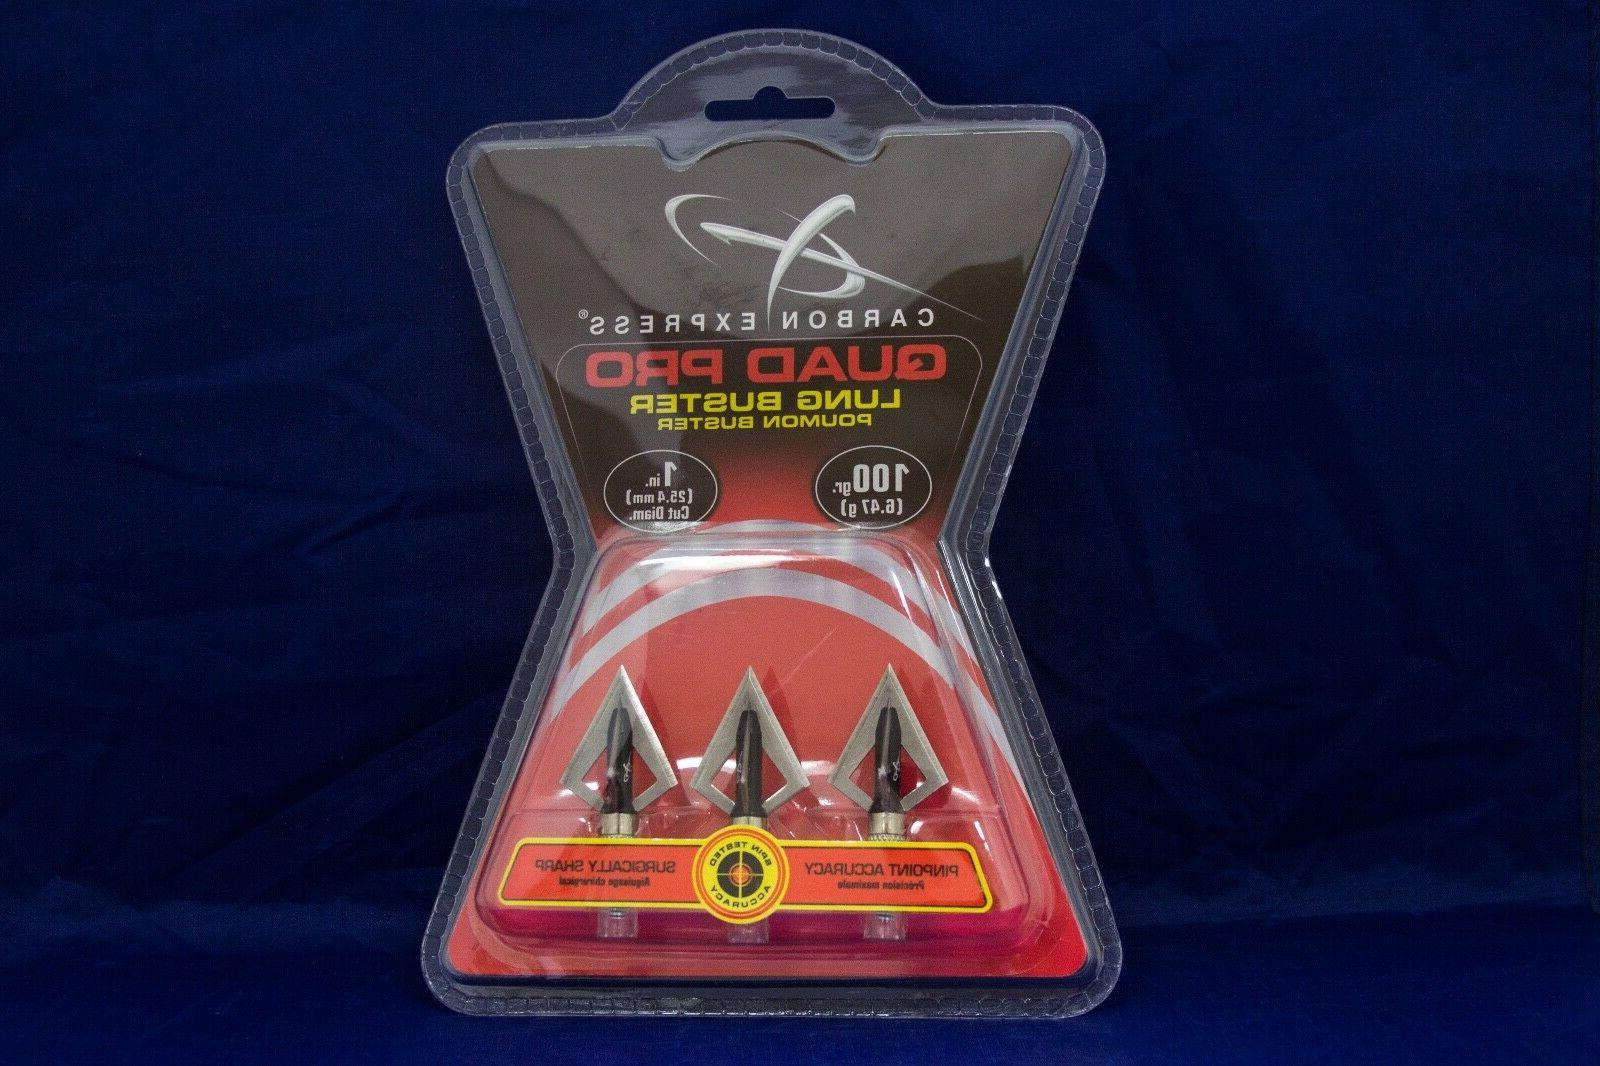 quad pro lung buster broadheads 3 pack